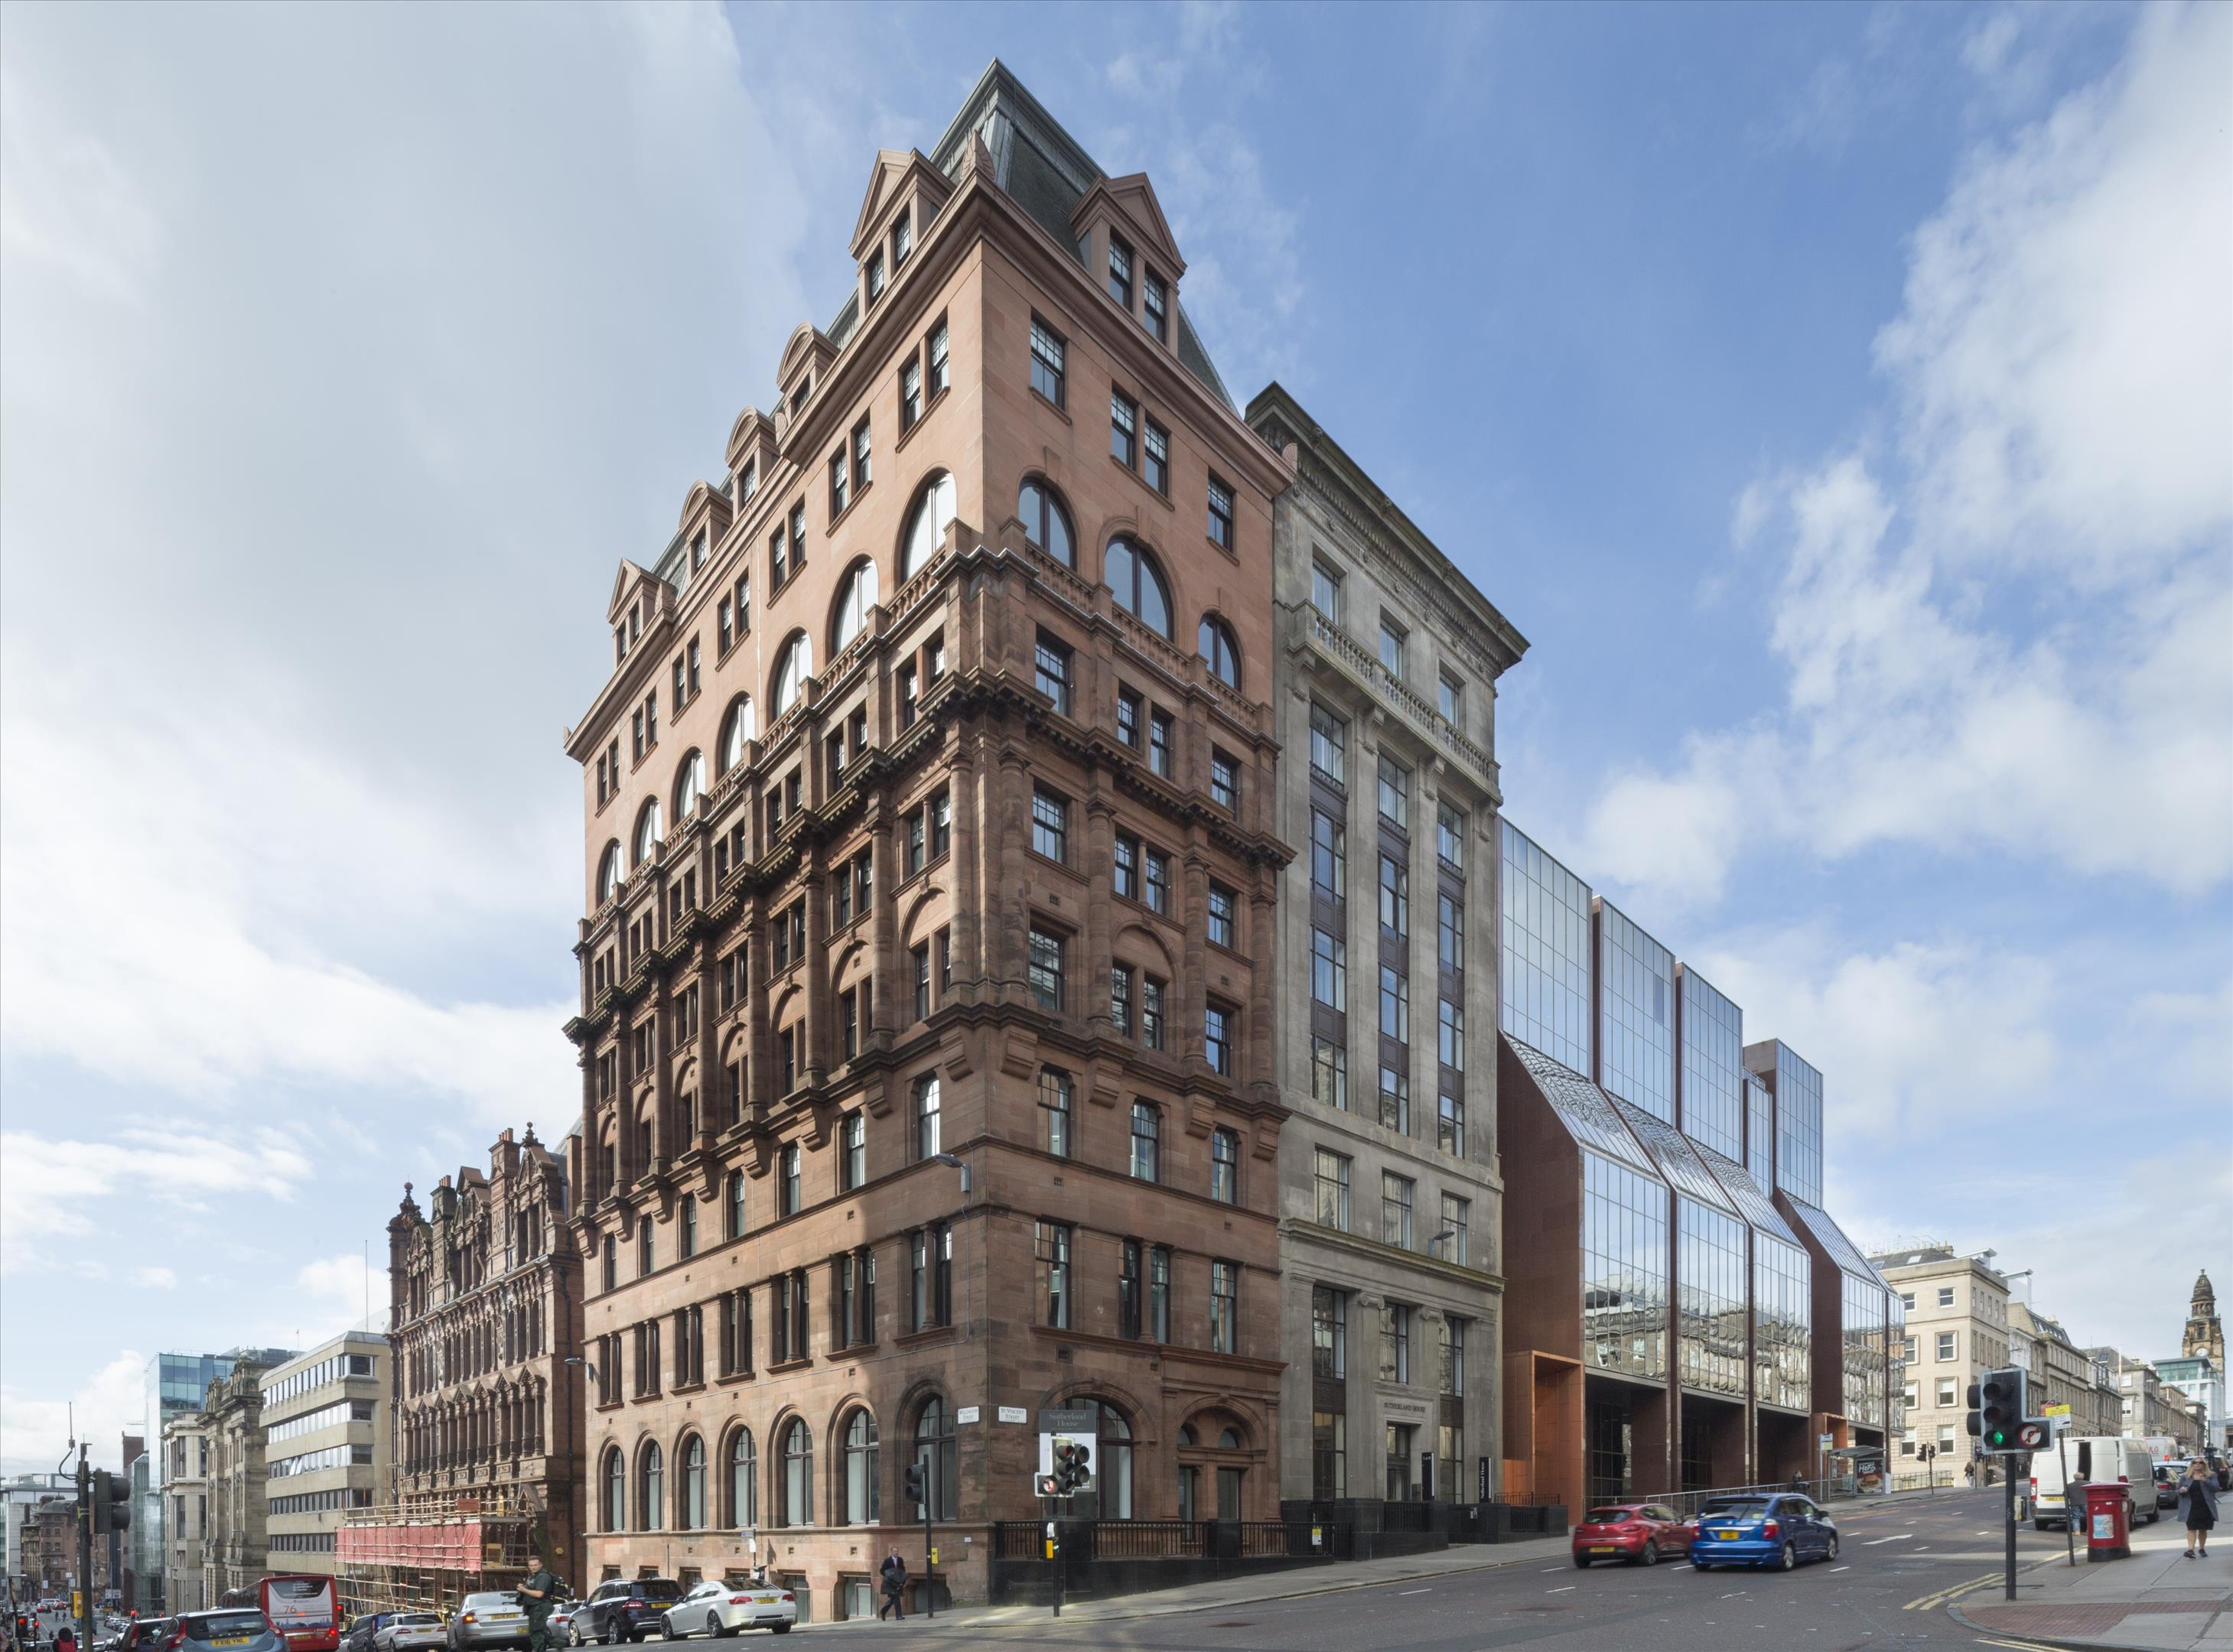 Commercial Property Agency Glasgow